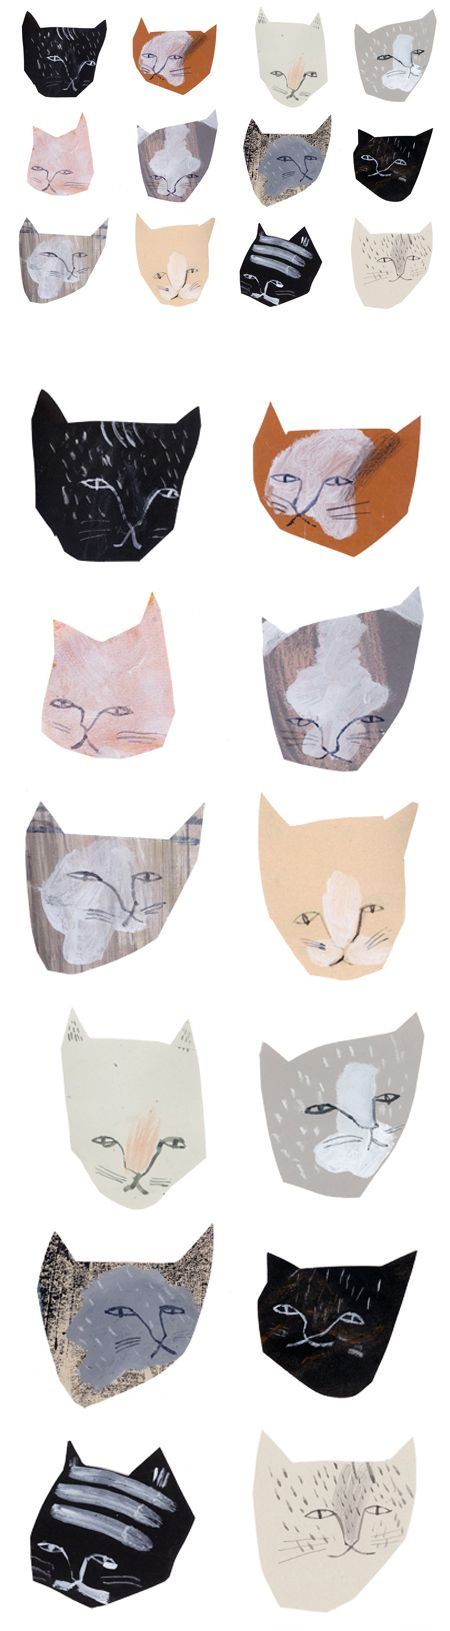 Cats by artist/illustrator Claire Softley